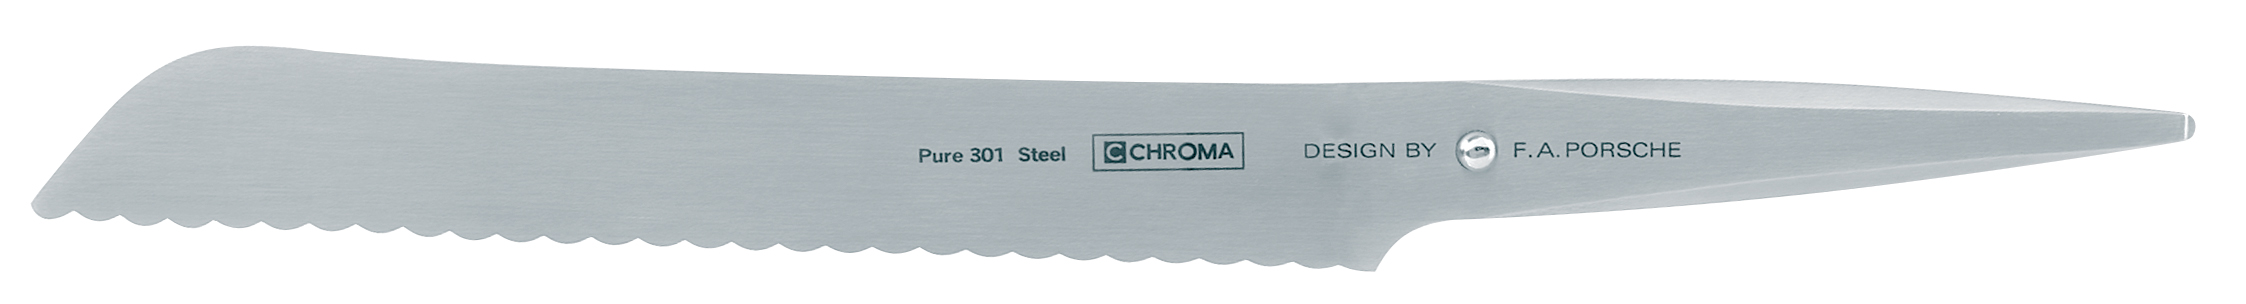 Chroma Type 301 Bread Knife - 8-1/2